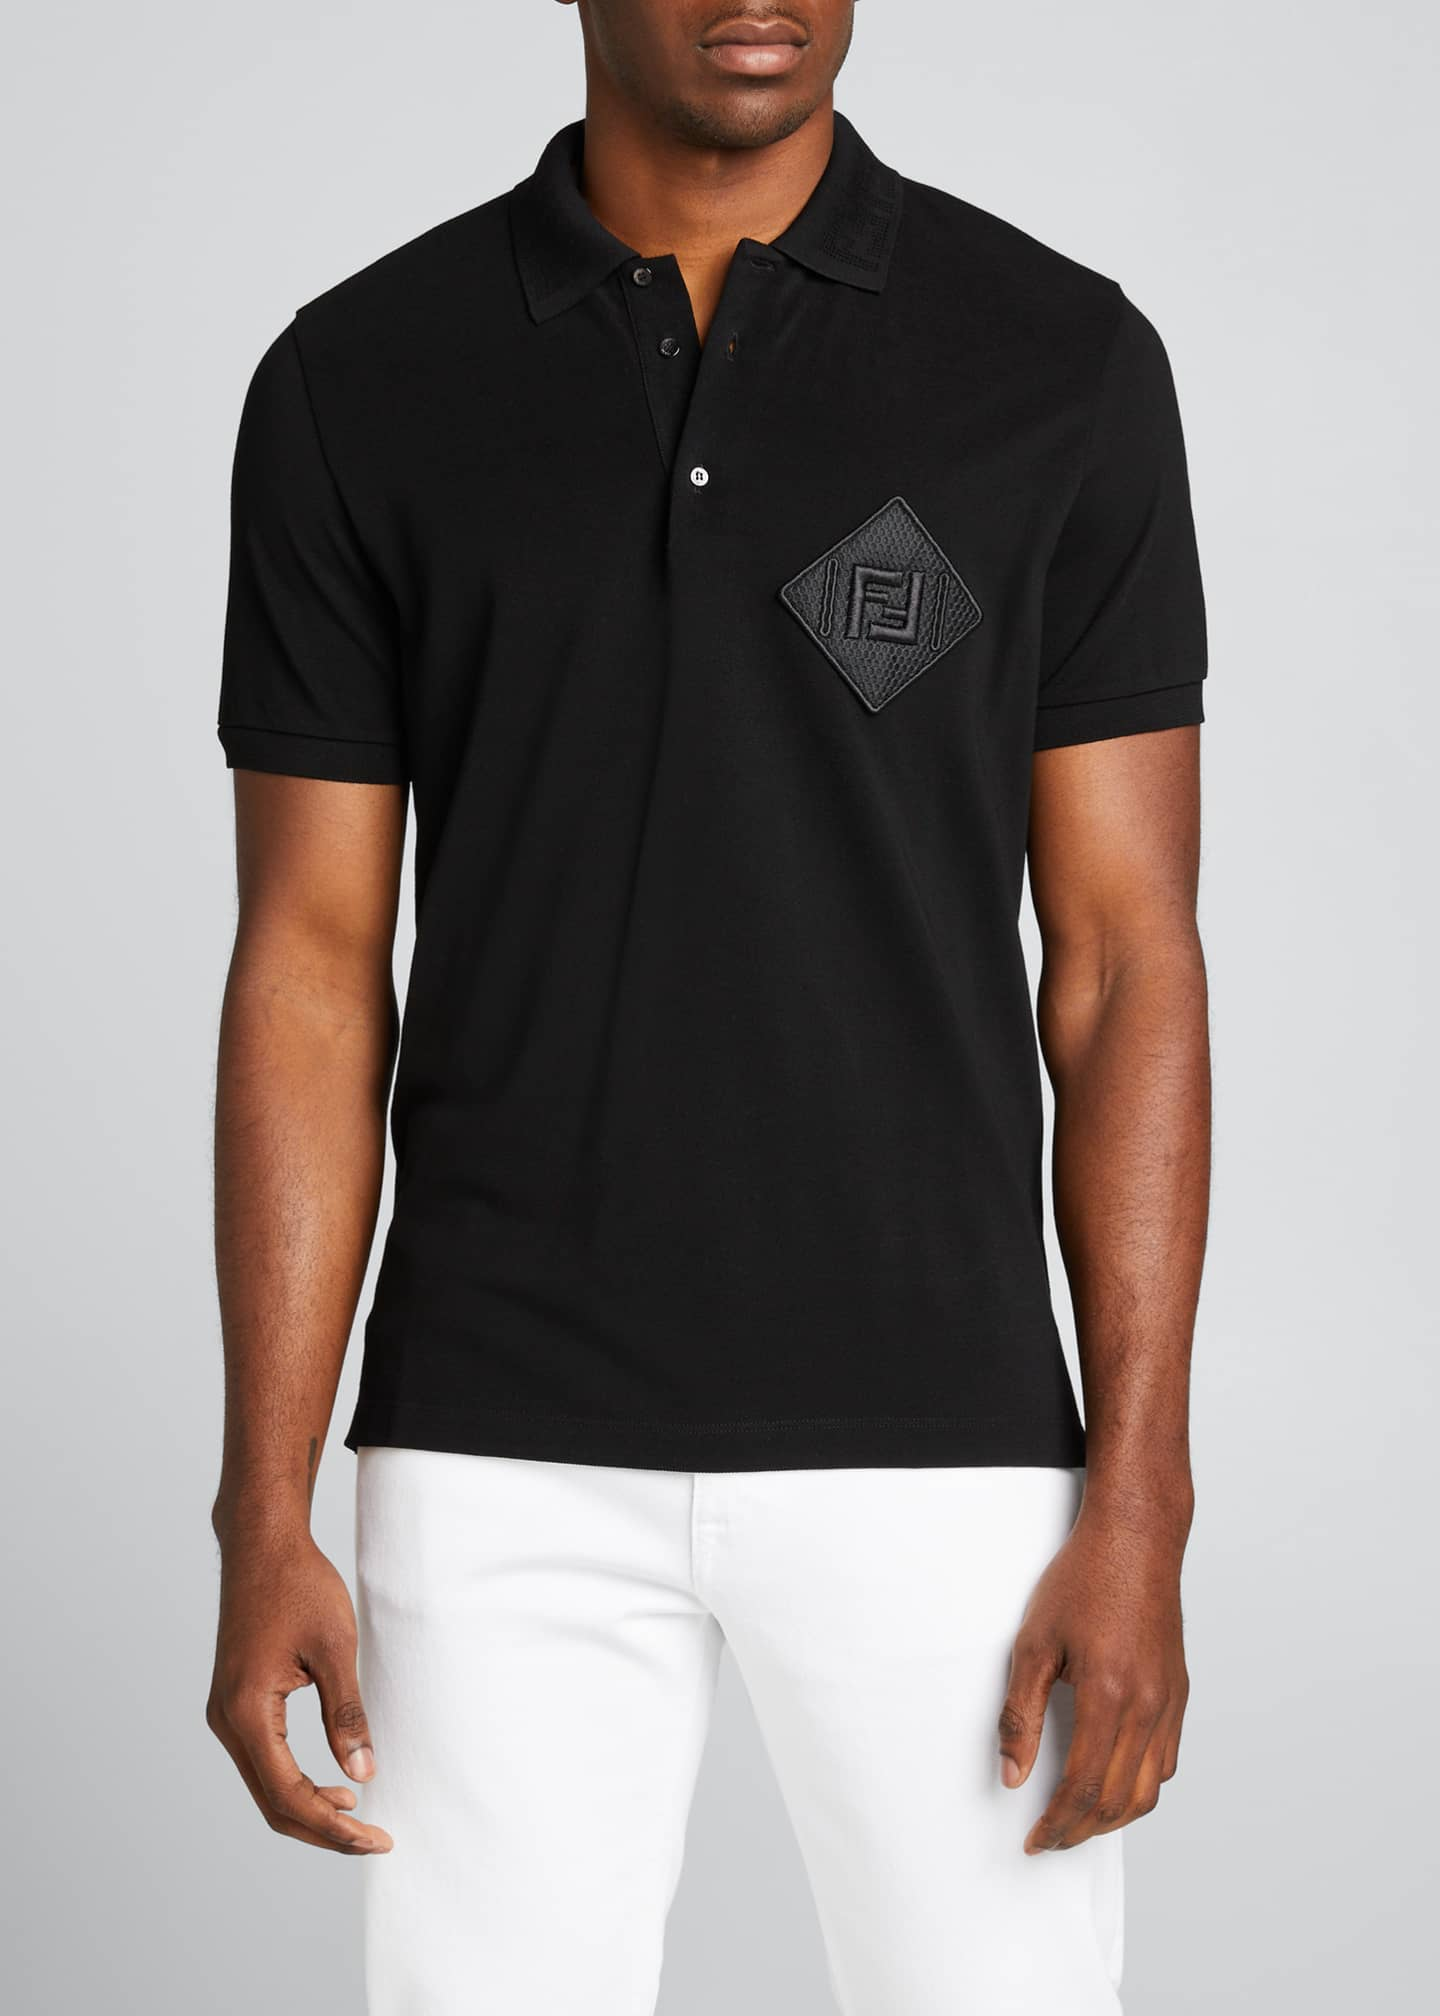 Image 3 of 5: Men's Pique Polo Shirt w/ Mesh FF Patch